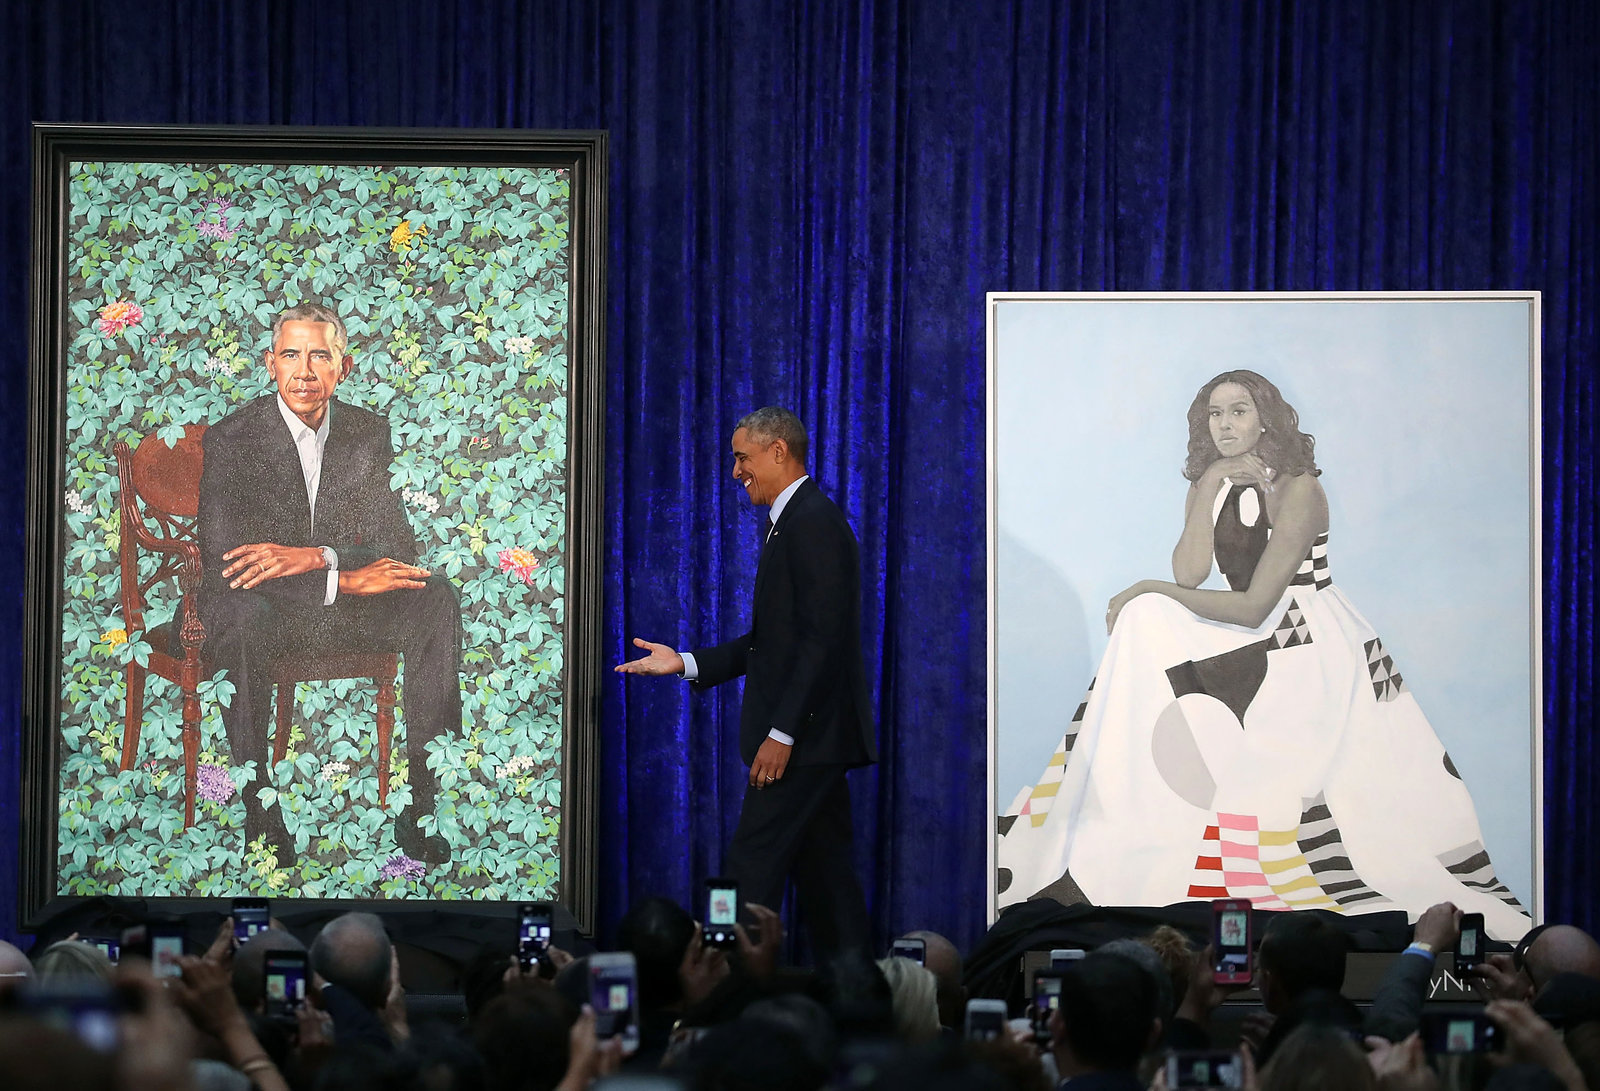 Obama stands between the portraits. His will be permanently installed in the 'America's Presidents' exhibit at the National Portrait Gallery in Washington, D.C. (Mark Wilson/Getty Images)